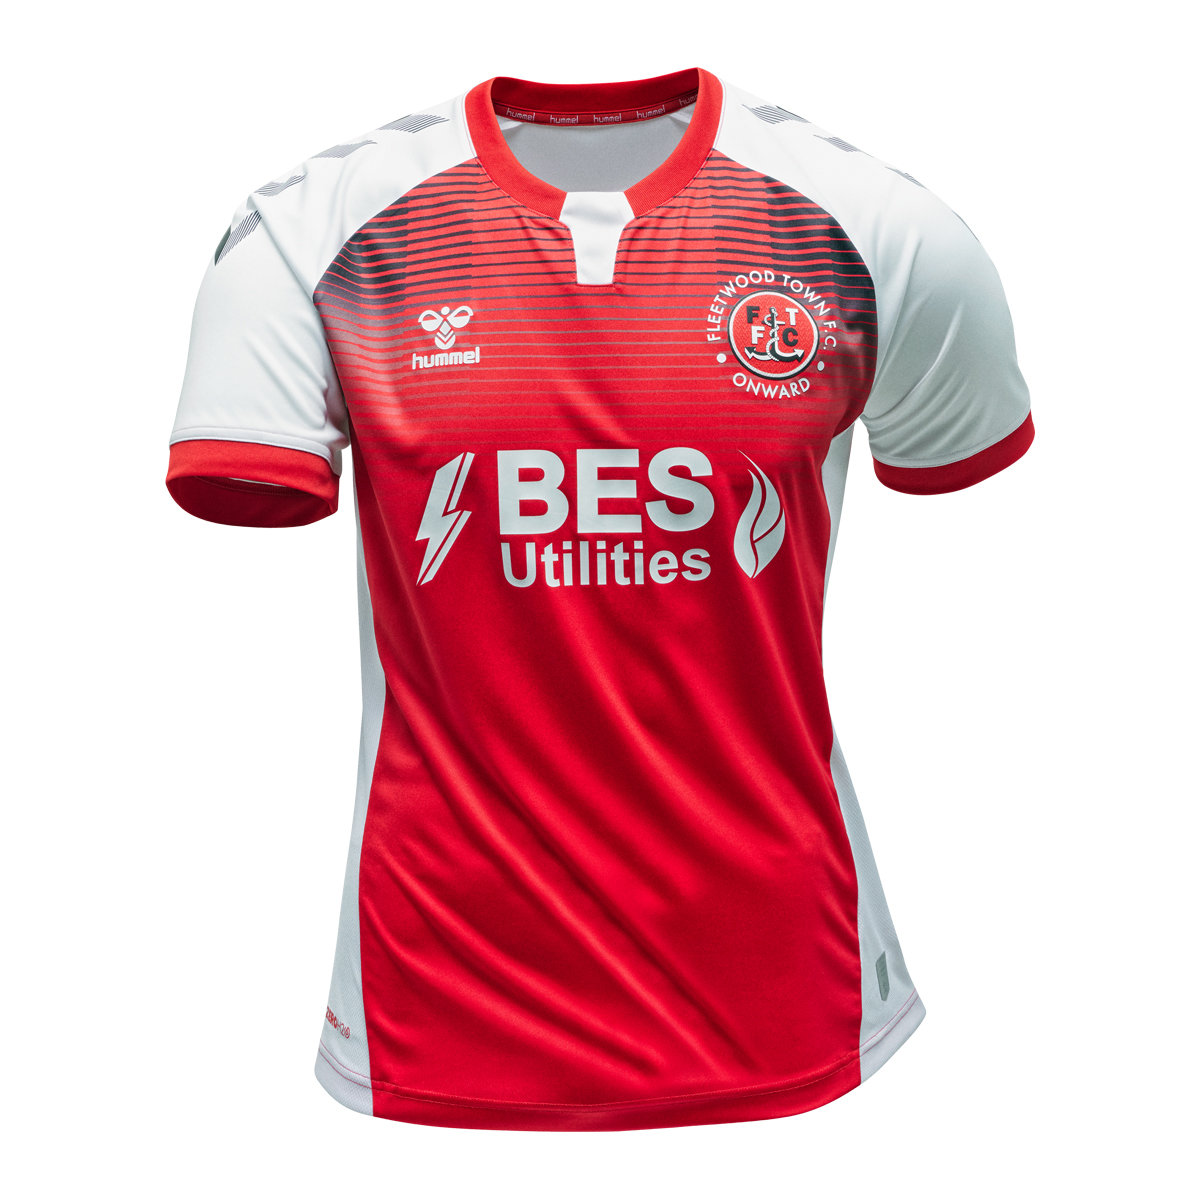 fleetwood-town-fc-new-adult-home-20-21-15952415202020-21-Home-Shirt2